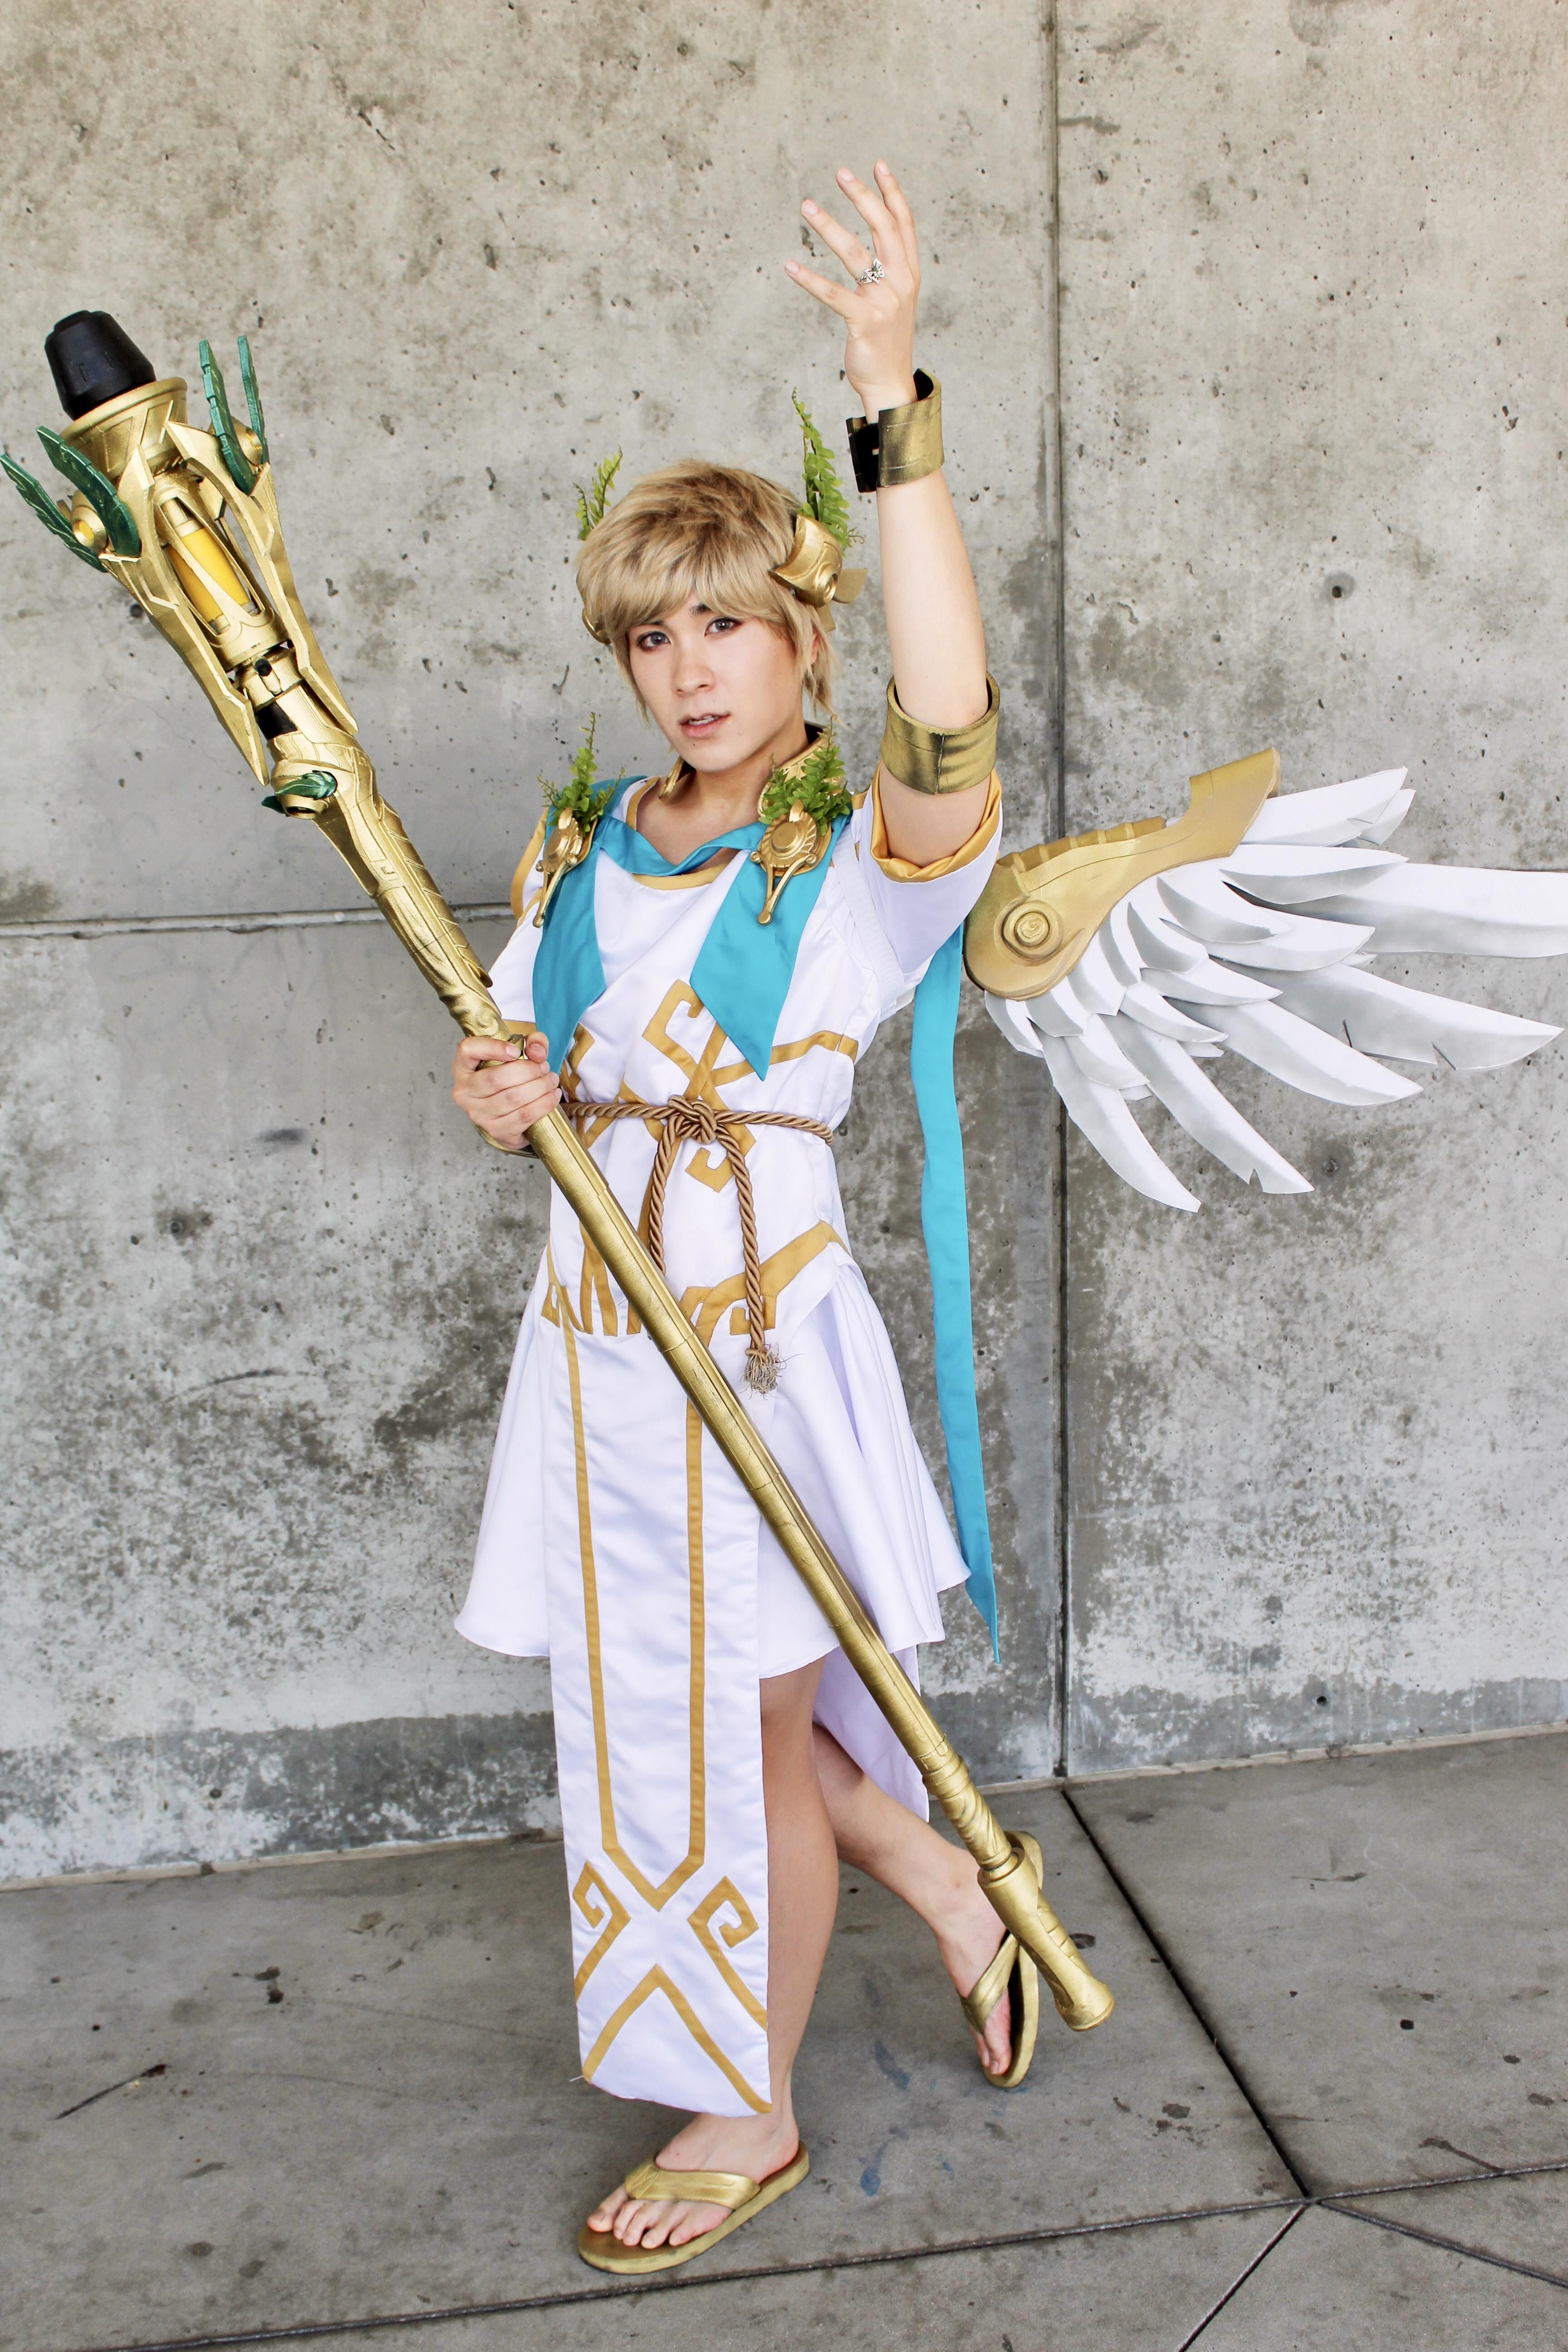 [self] My gender bentish winged victory Mercy Overwatch